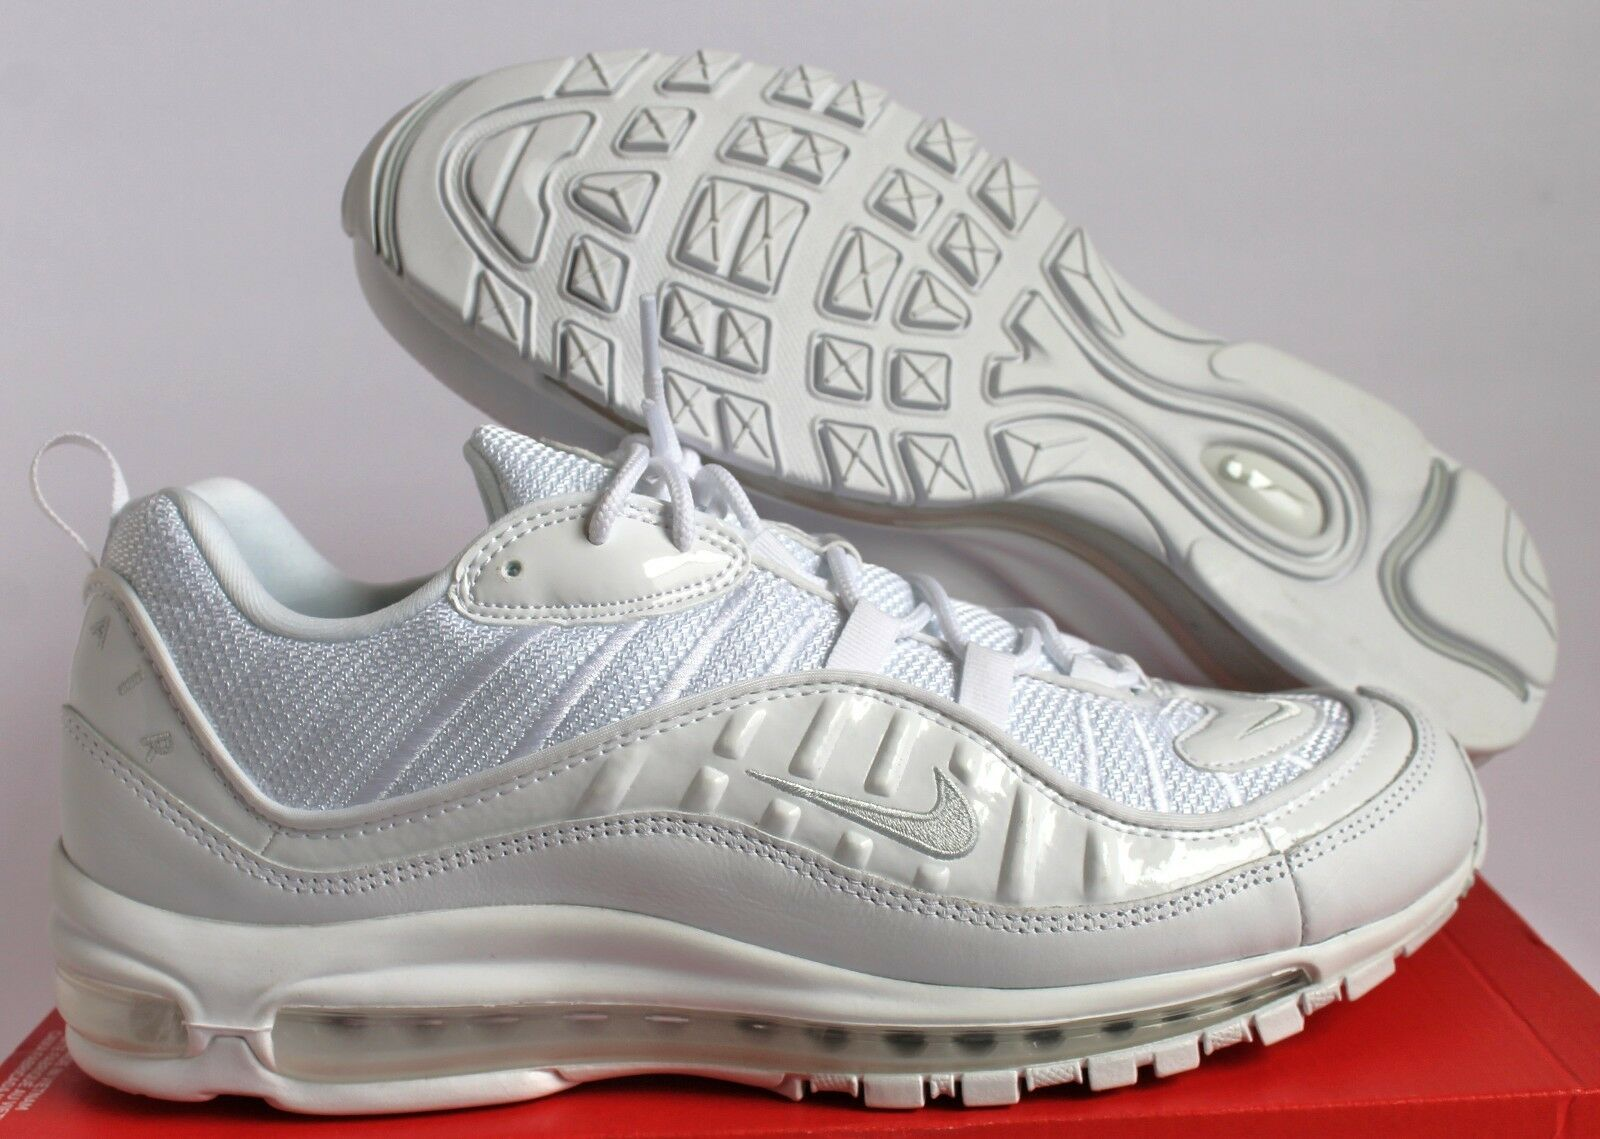 acc101a0528 Nike Air Max 98 Triple White Pure Platinum 640744-106 Mens Size 13 ...